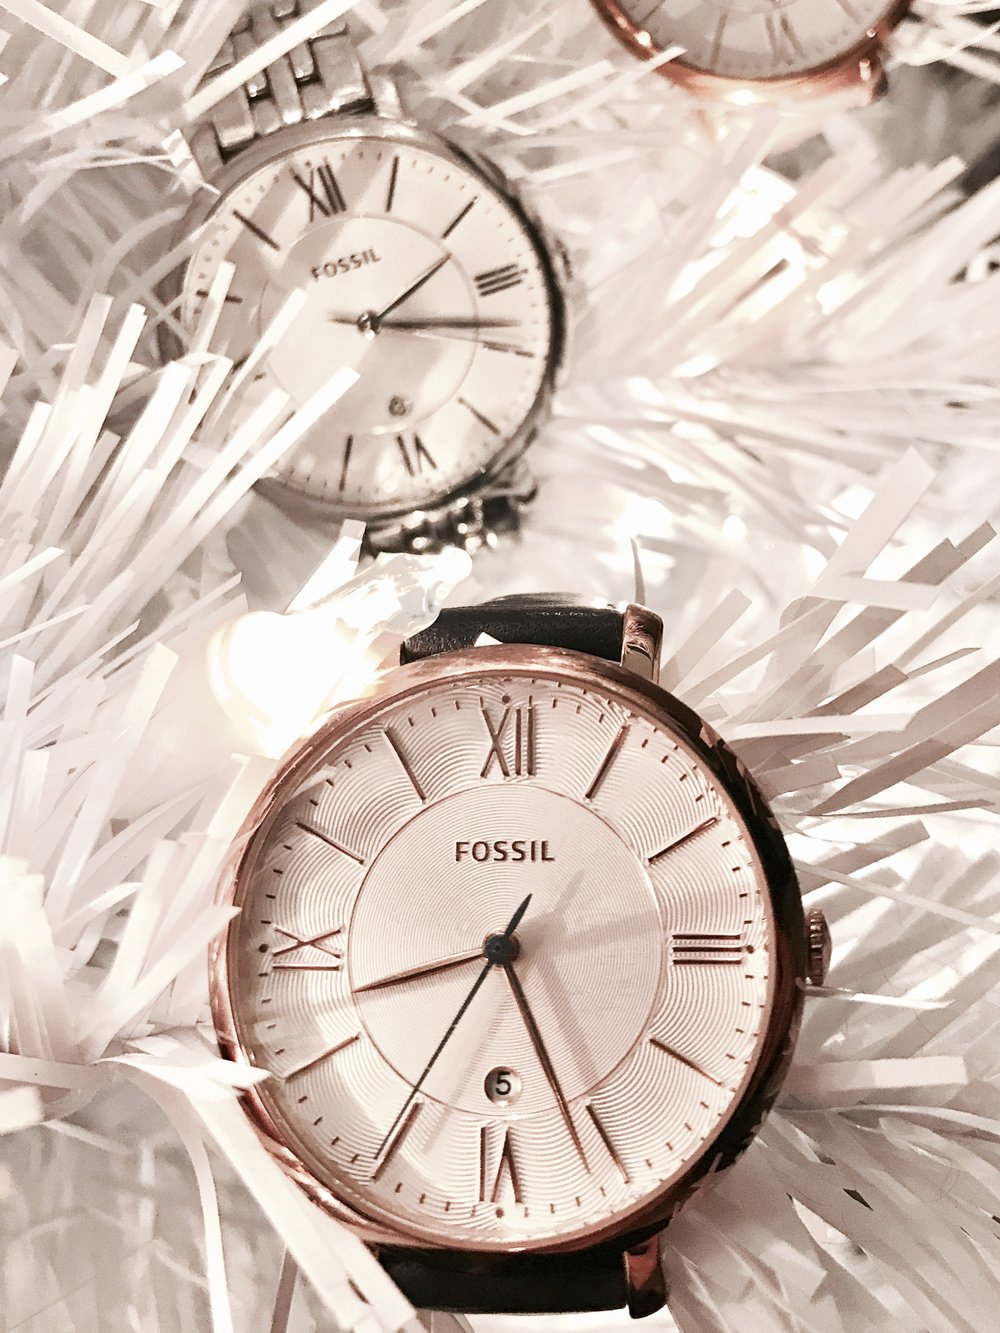 Cute Fossil Watches - Available at local jewellery stores or fossil.com